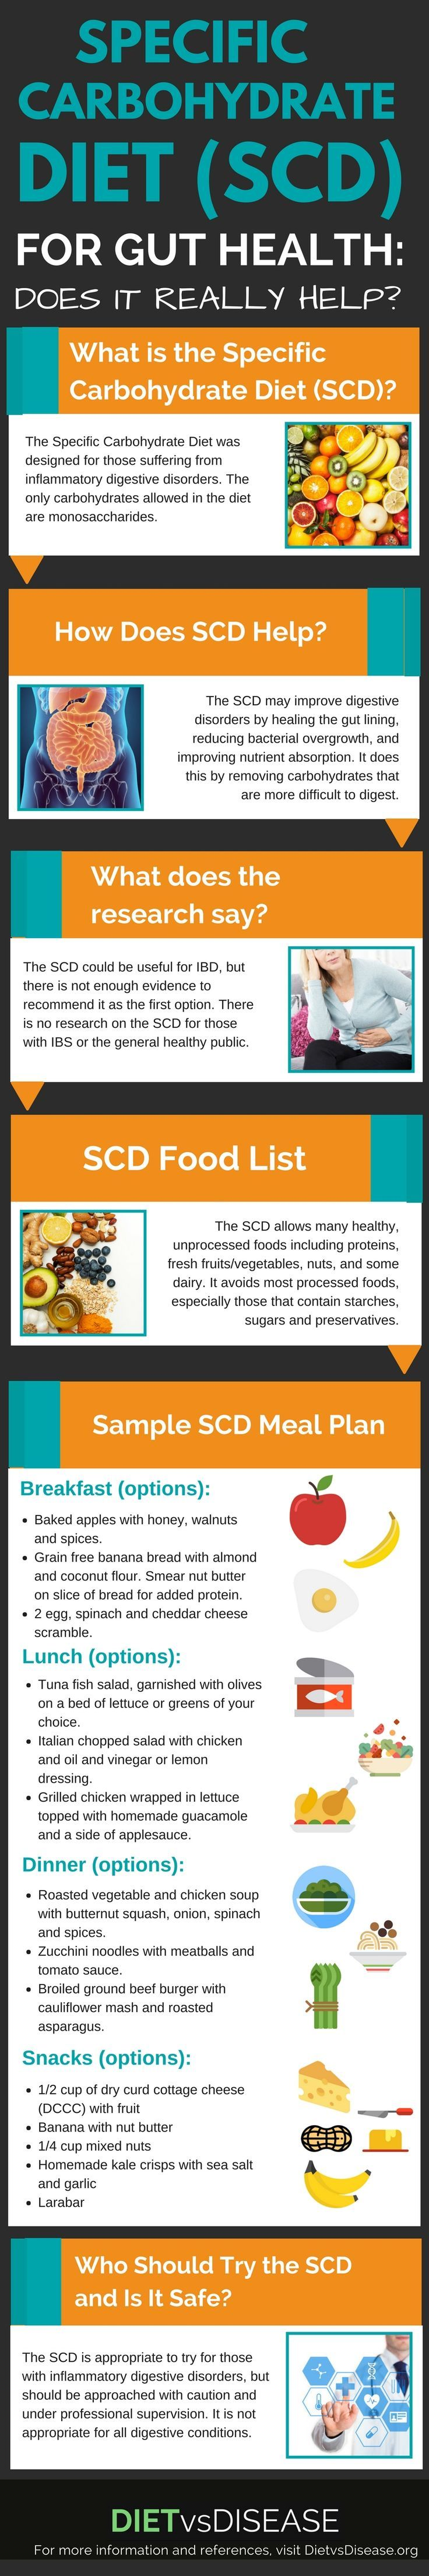 The Specific Carbohydrate Diet (SCD) is often used by people suffering from digestive disorders. But does it really help to improve gut health?